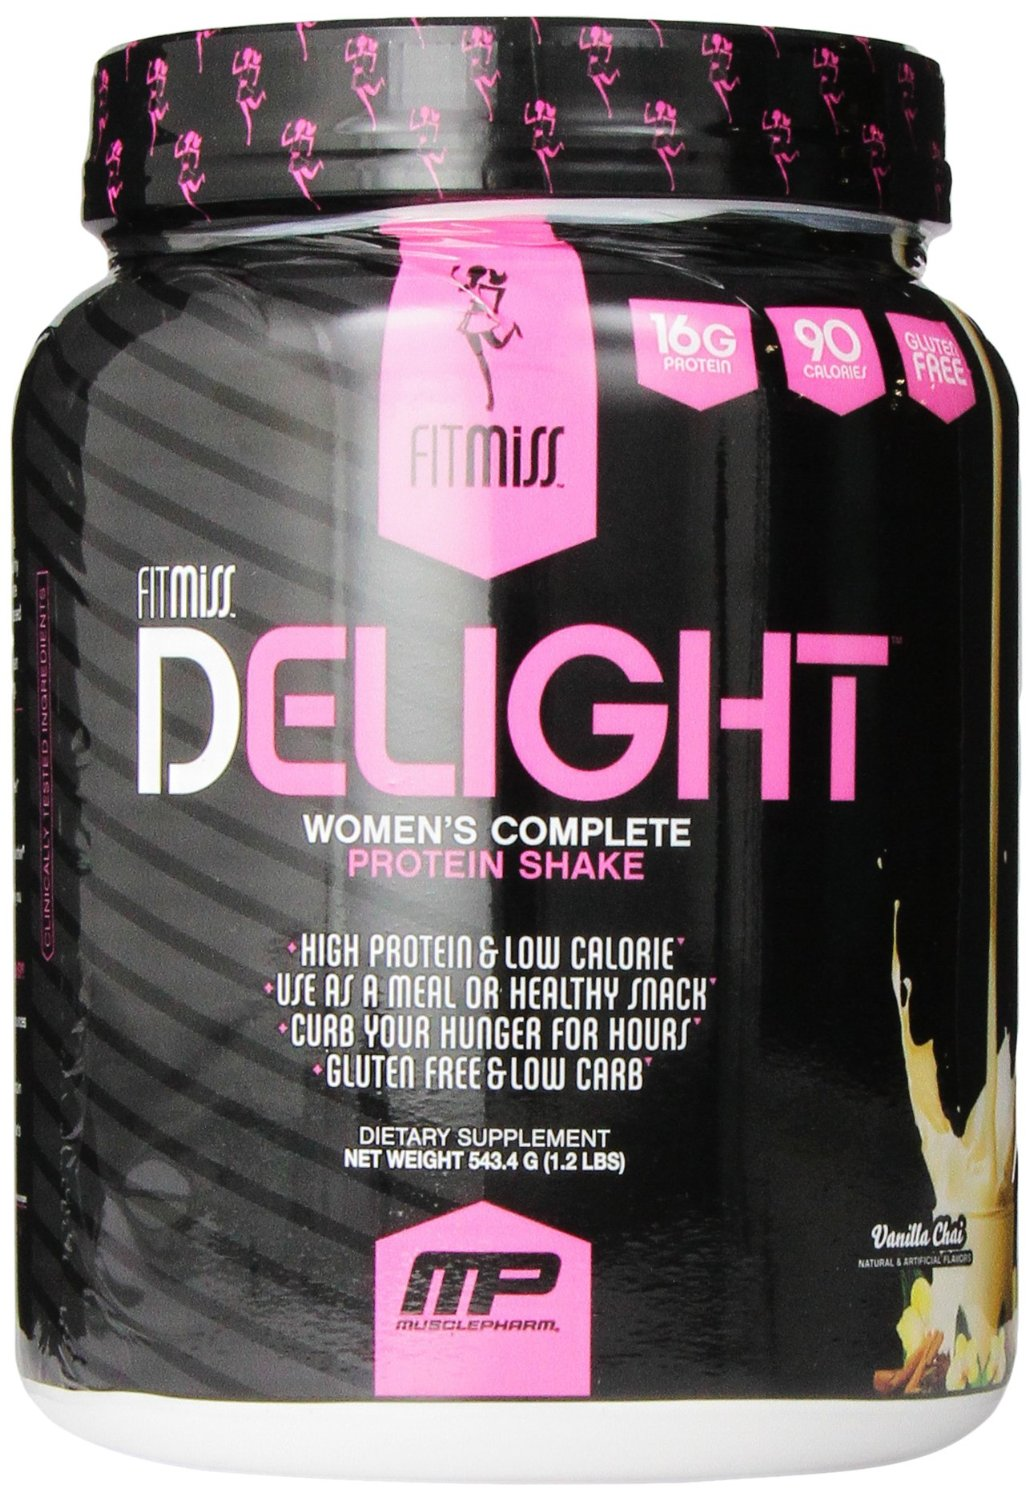 Best Protein Powder For Women Rating Fitmiss Delight